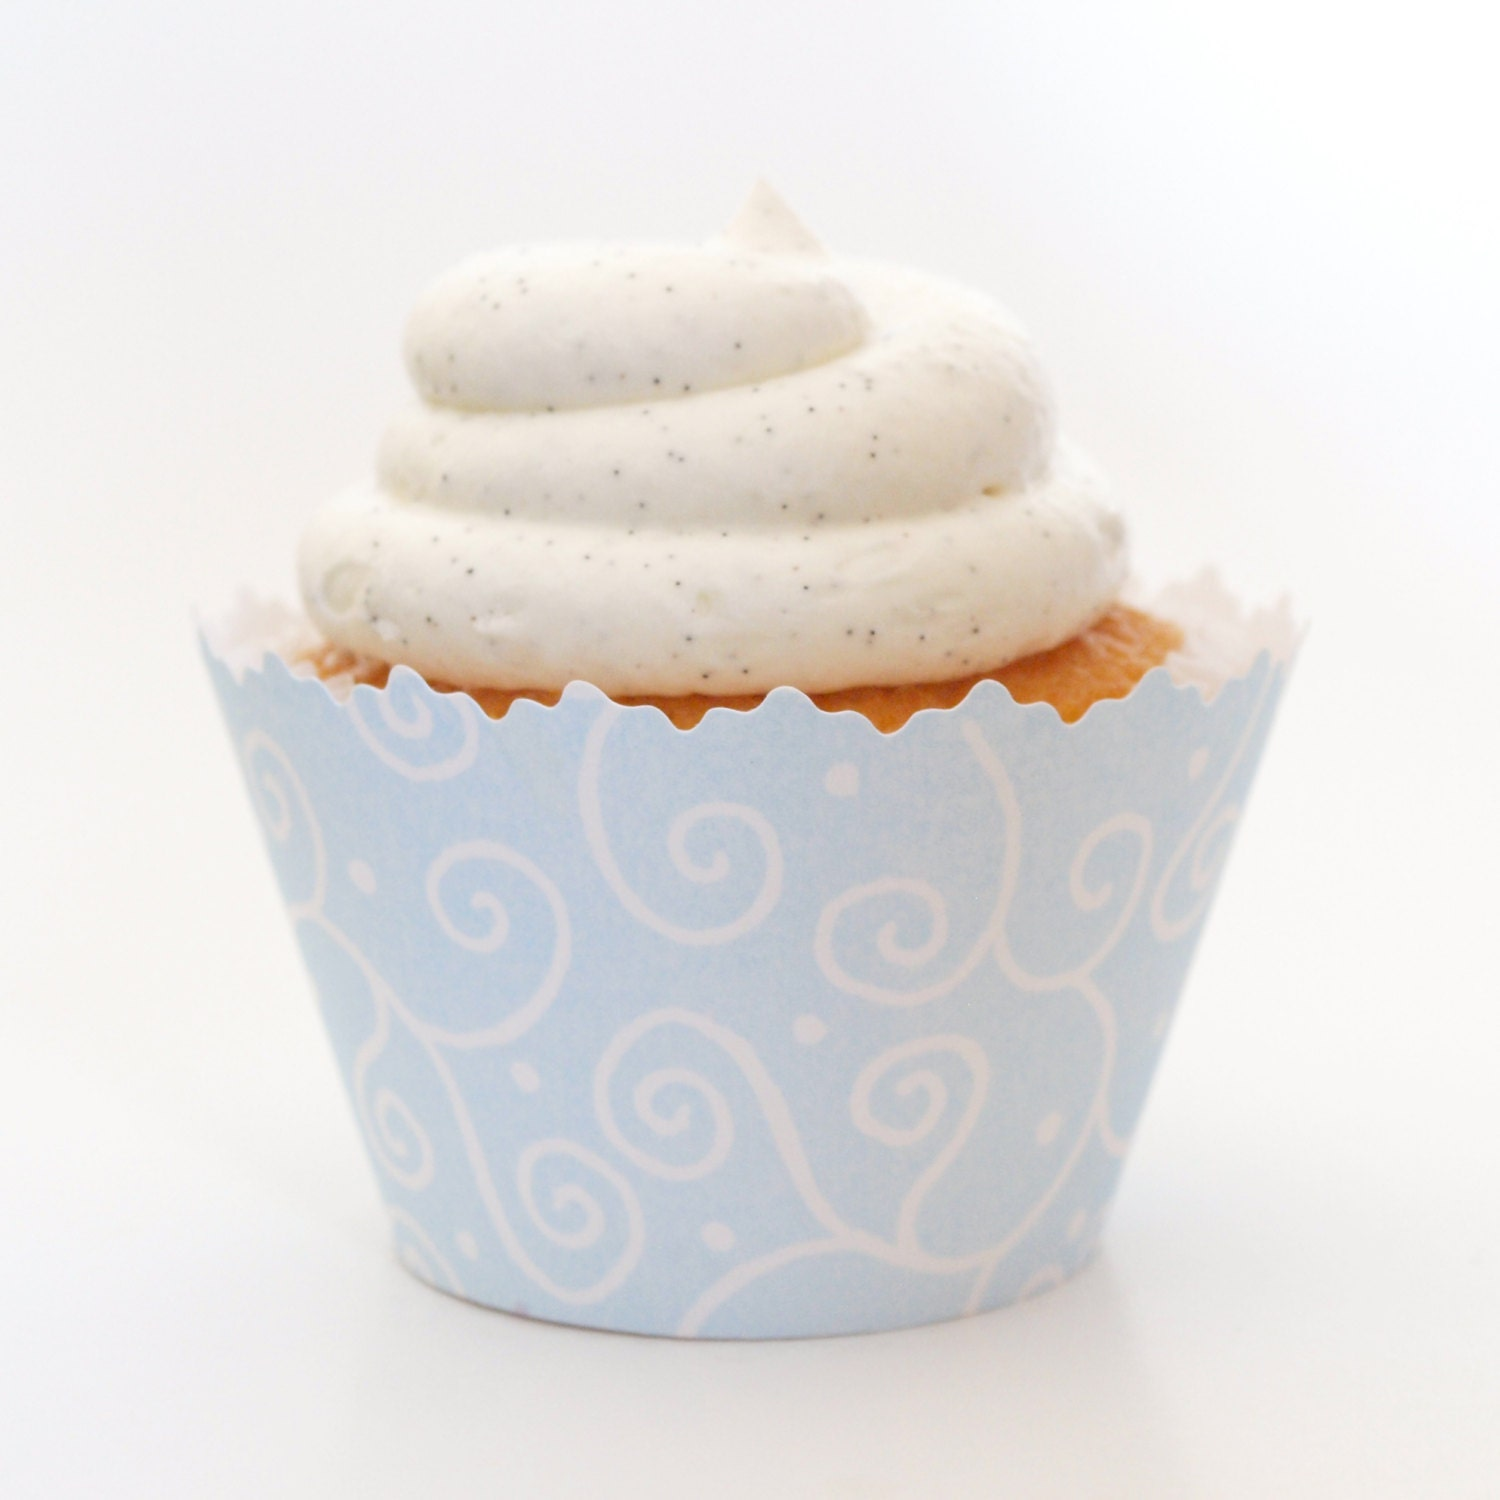 Pastel Blue Swirl Cupcake Wrappers-Set of 12-Boy Baby Shower Idea, Winter Wedding Favors, Spring Engagement,  Formal Dinners, Bridal Showers - simplywrappers